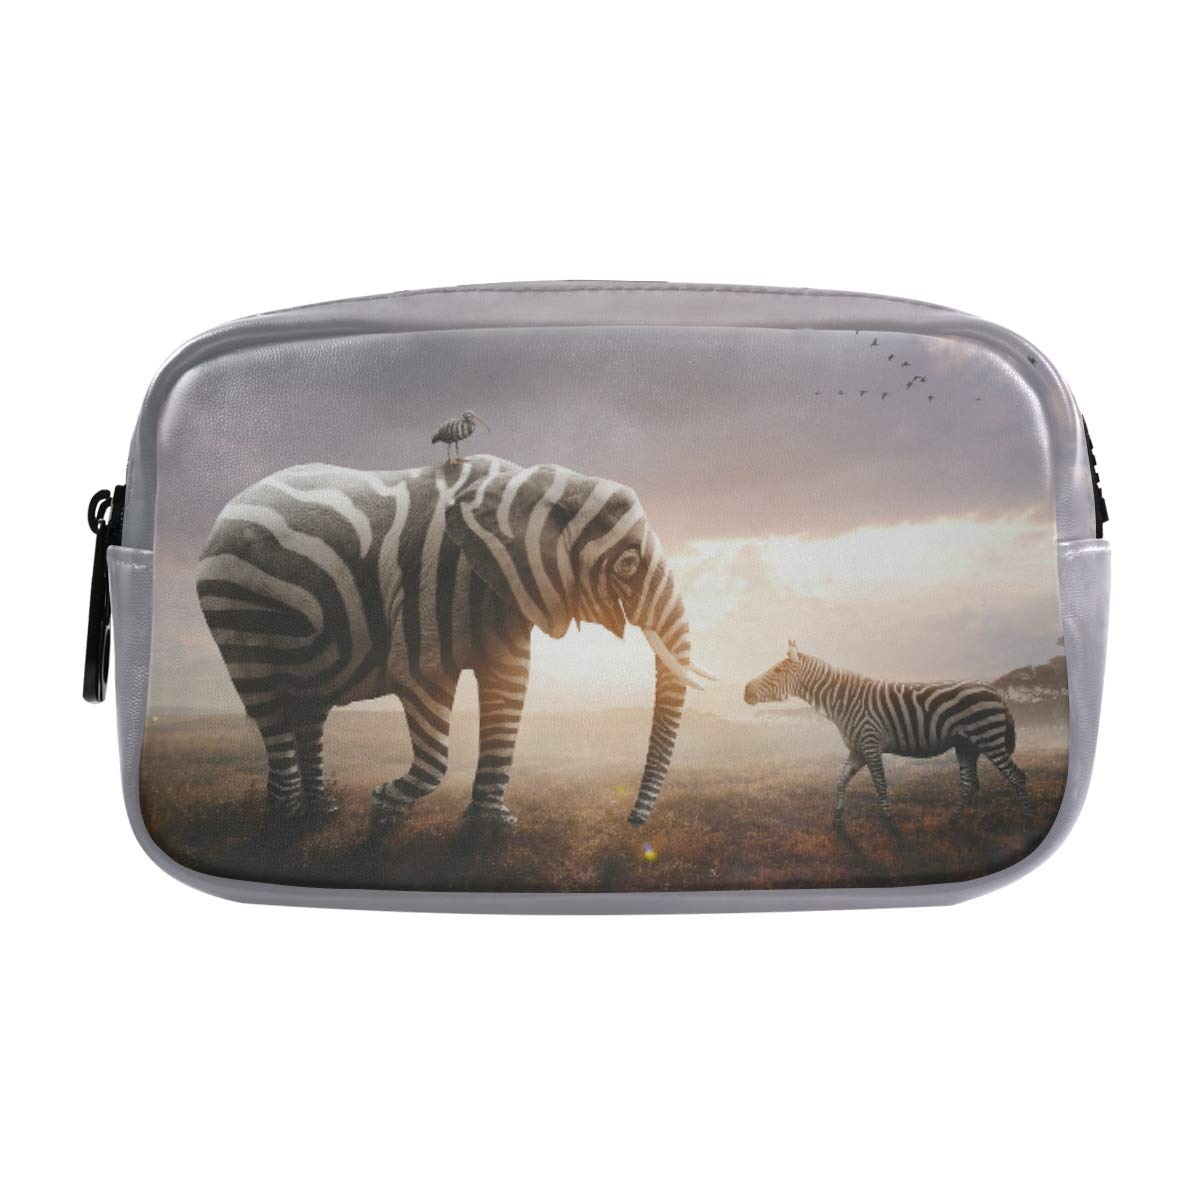 ALAZA African Elephant Wearing Black and White Zebra Stripes Cosmetic Bag Leather Pencil Case Waterproof Portable Travel Makeup Pouch with Zipper for Women Girls Teens